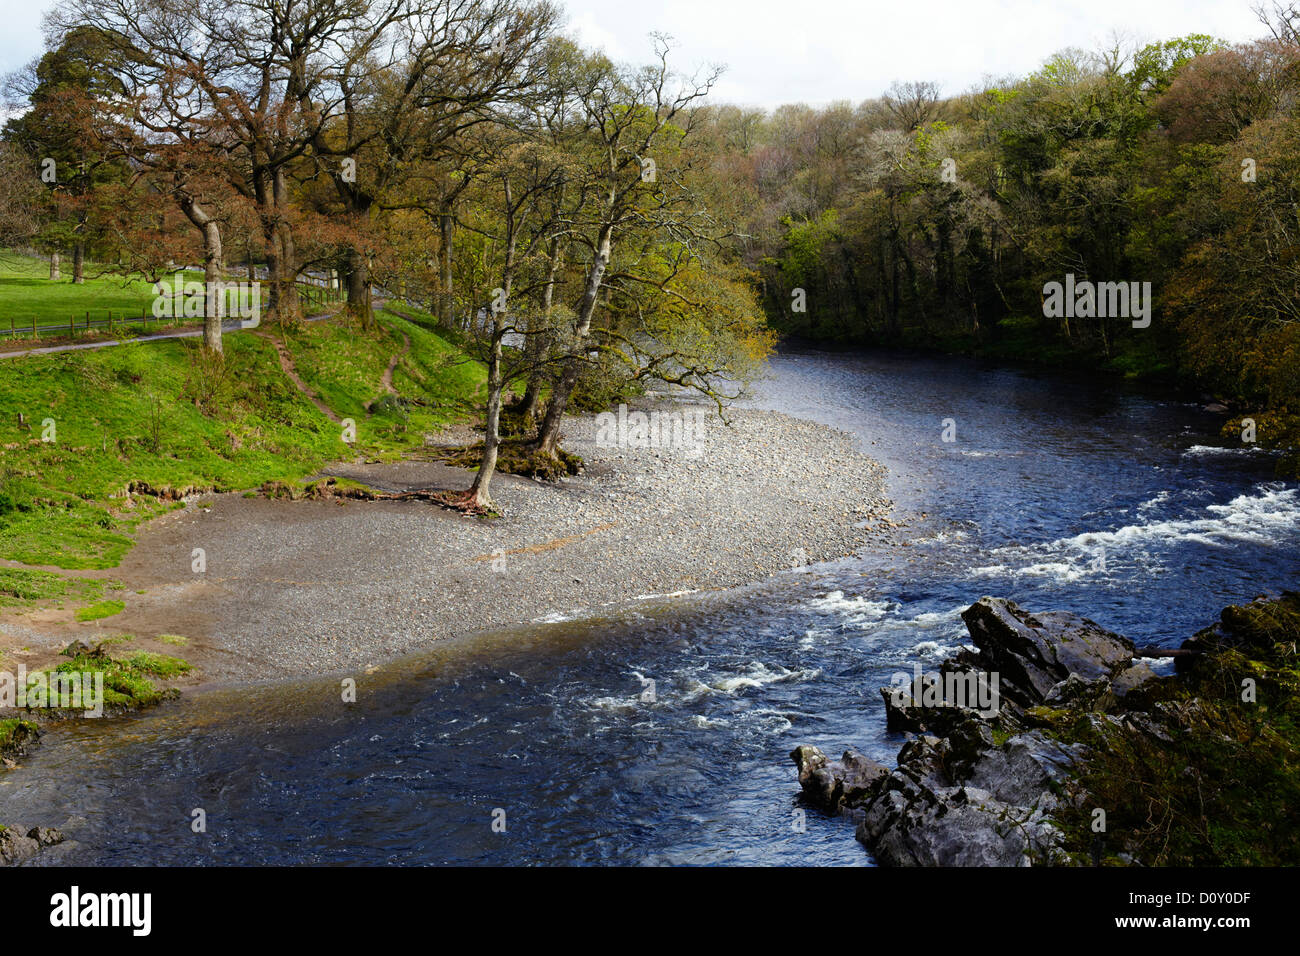 River Lune at Kirby Lonsdale - Stock Image